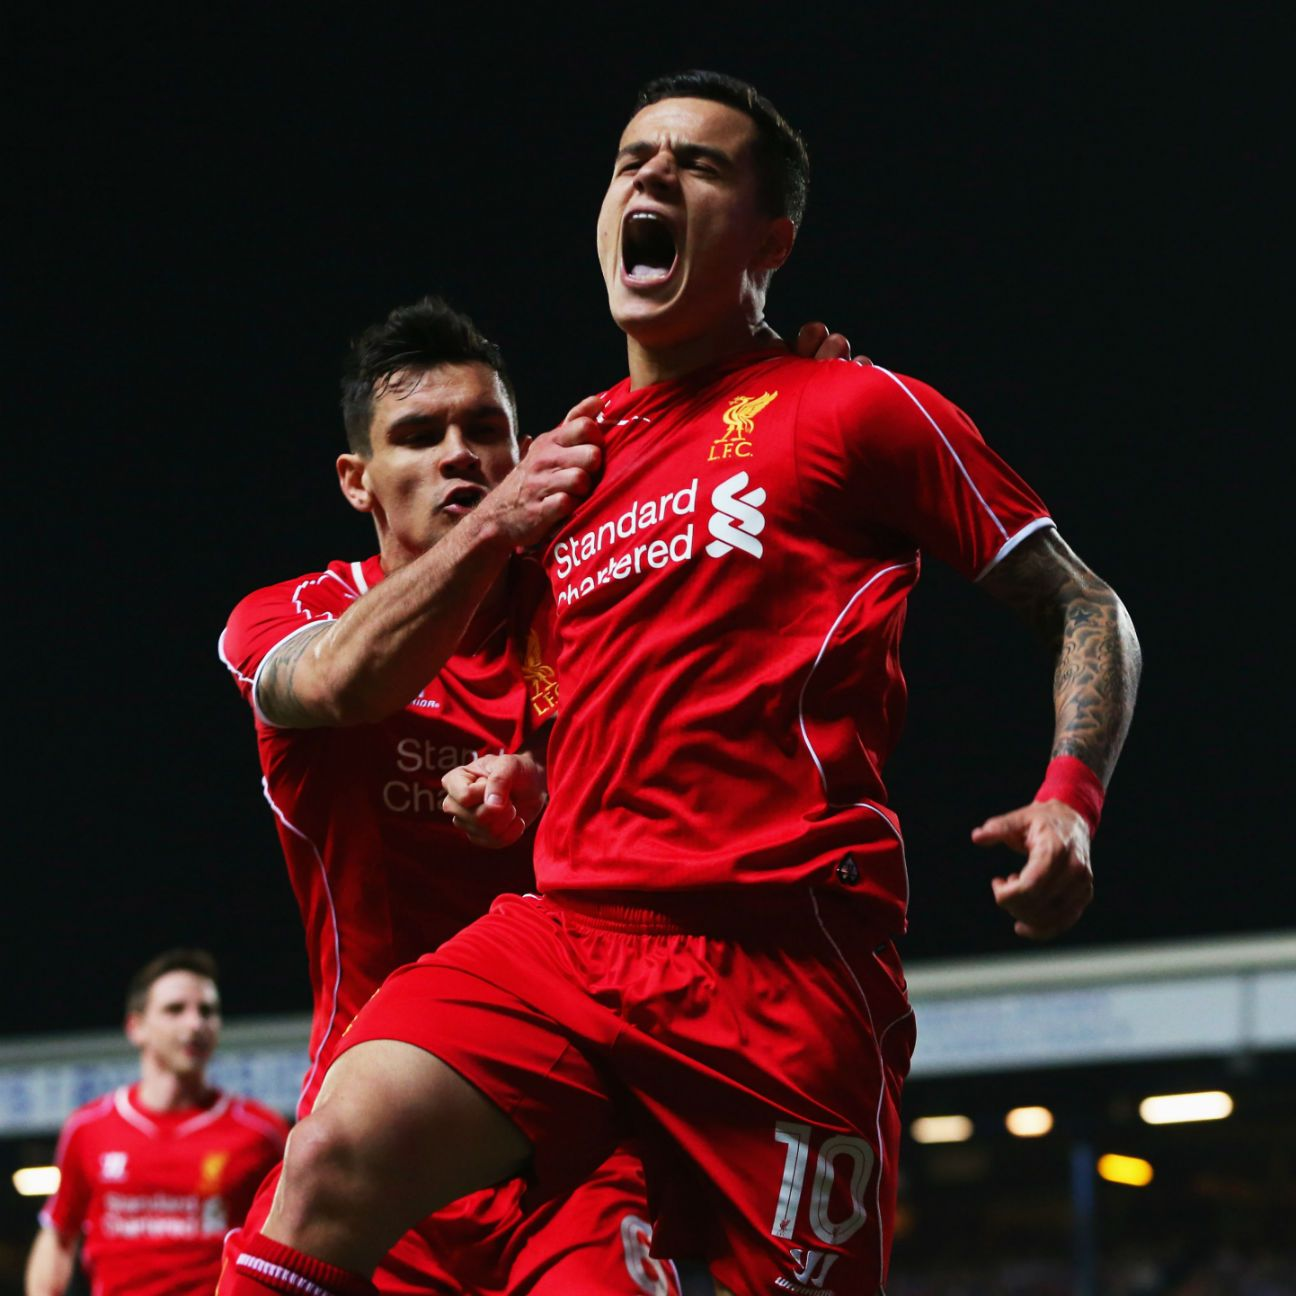 Philippe Coutinho repeated his fourth-round FA Cup heroics at Bolton with the match-winner on Wednesday at Blackburn.